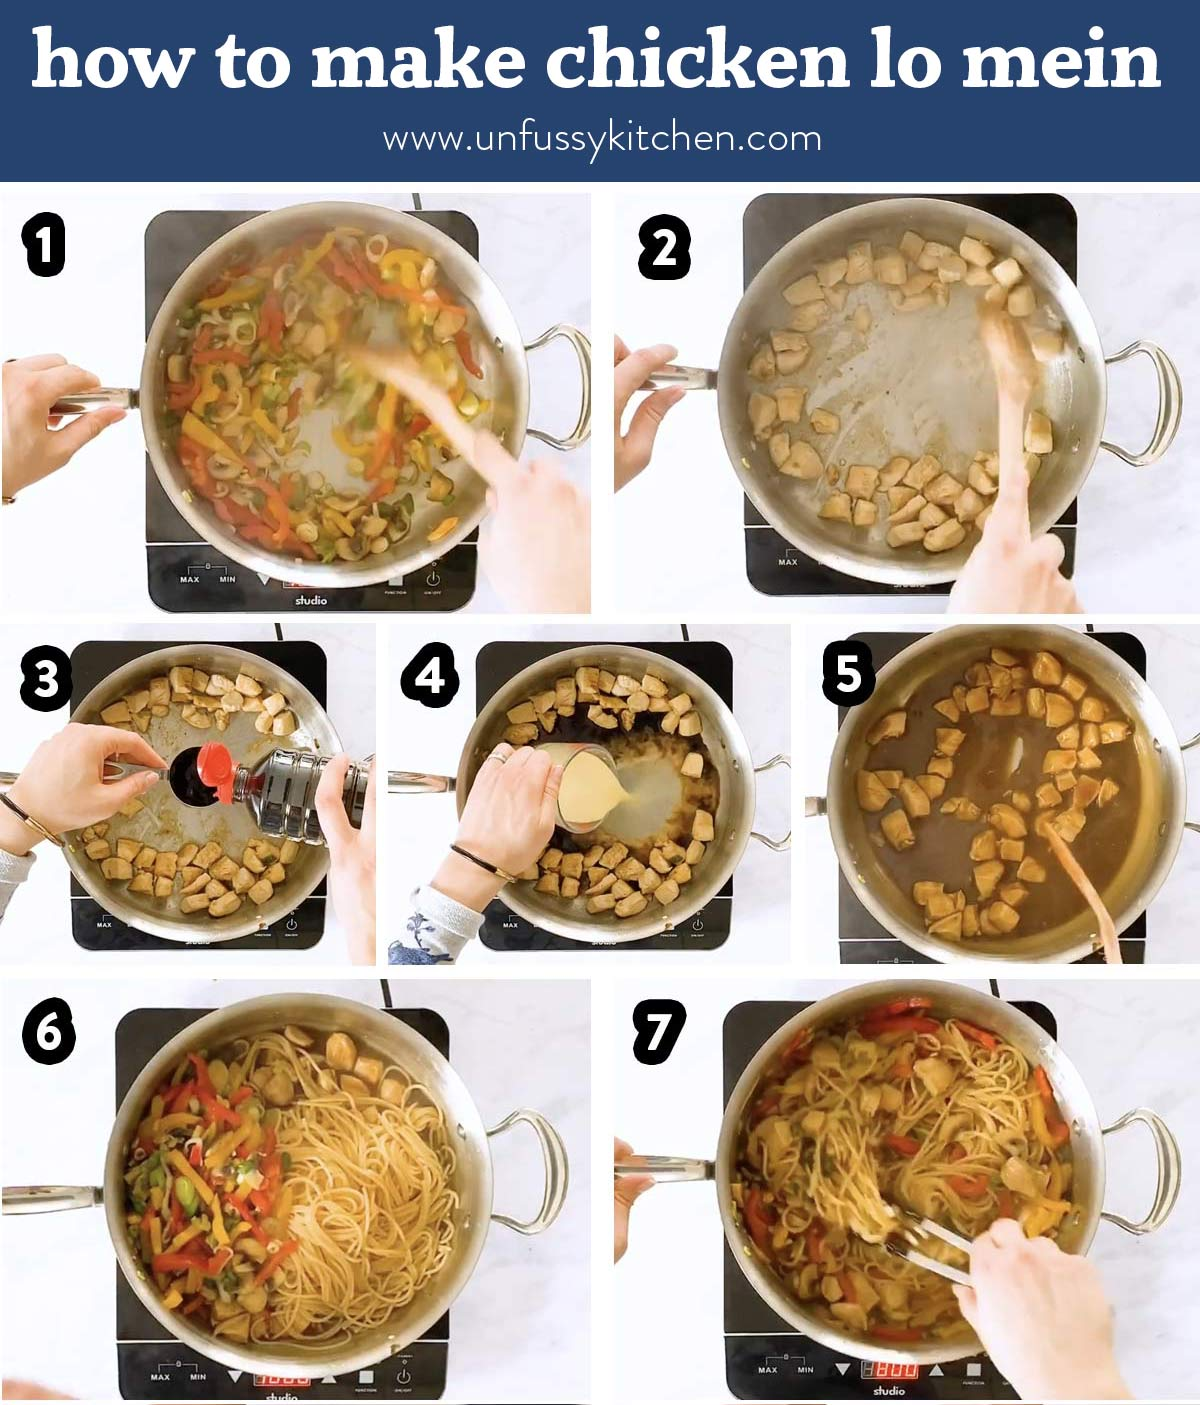 photo collage of steps to make chicken lo mein with text overlay